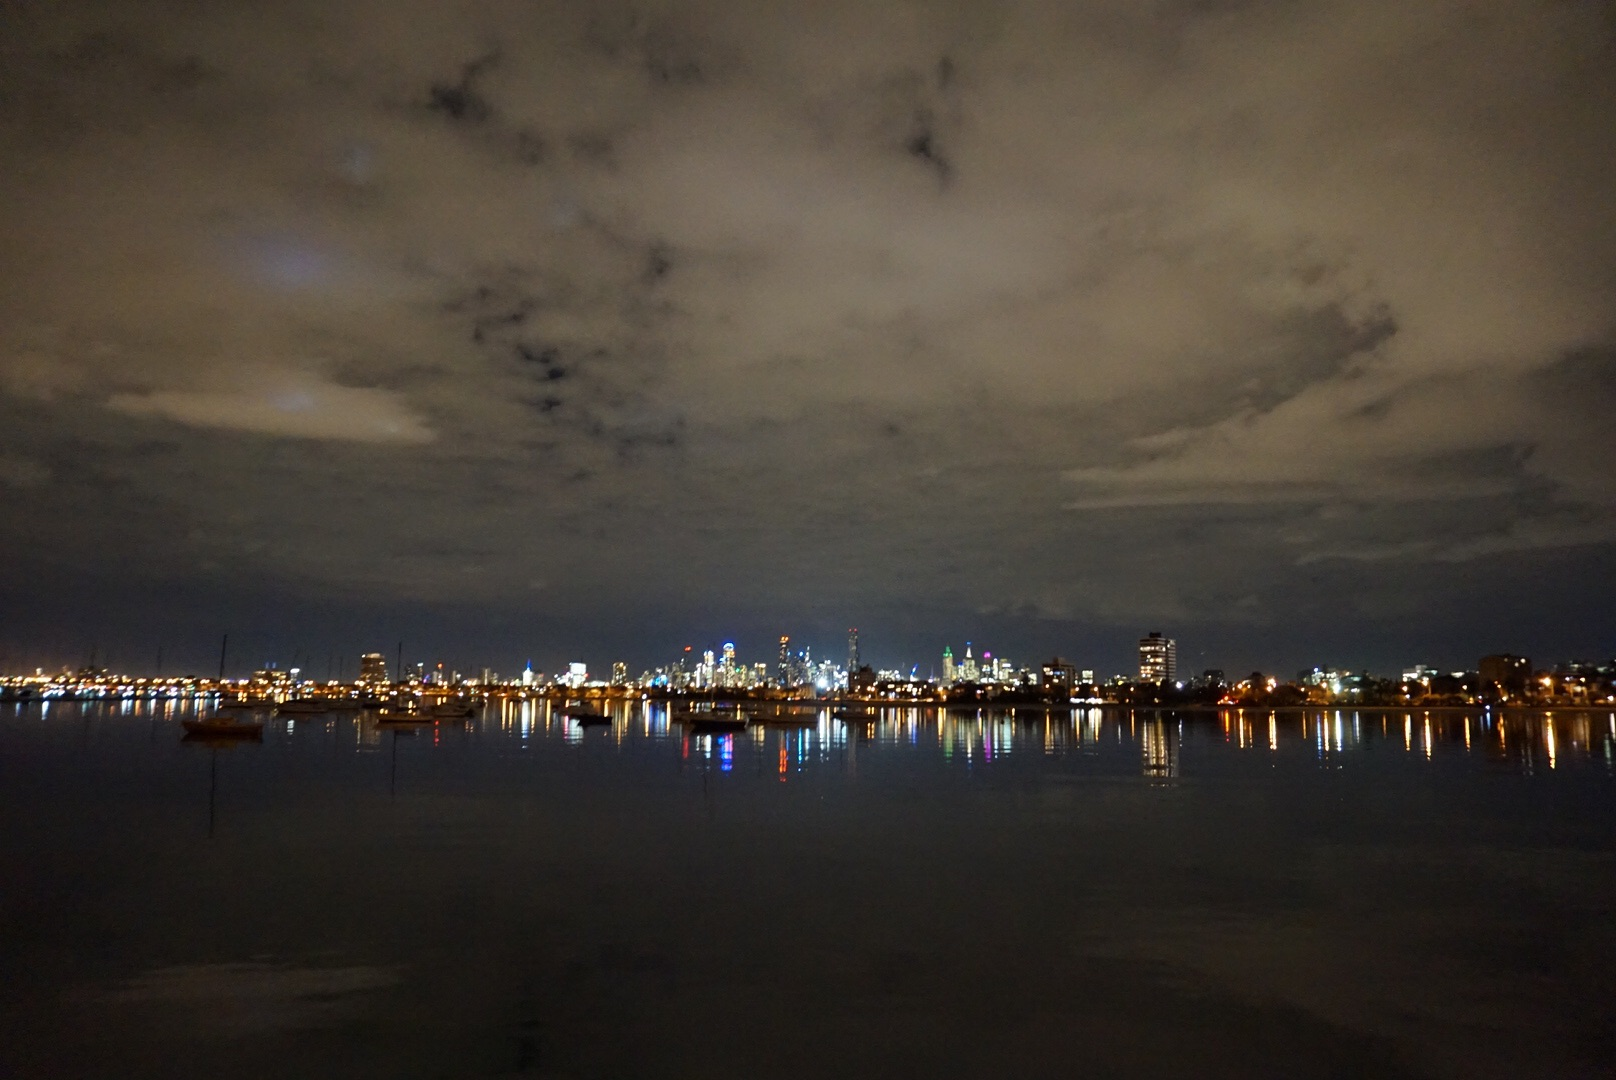 Final night in Melbourne, I decided to go to see penguins at St.Kilda beach and got this amazing view.